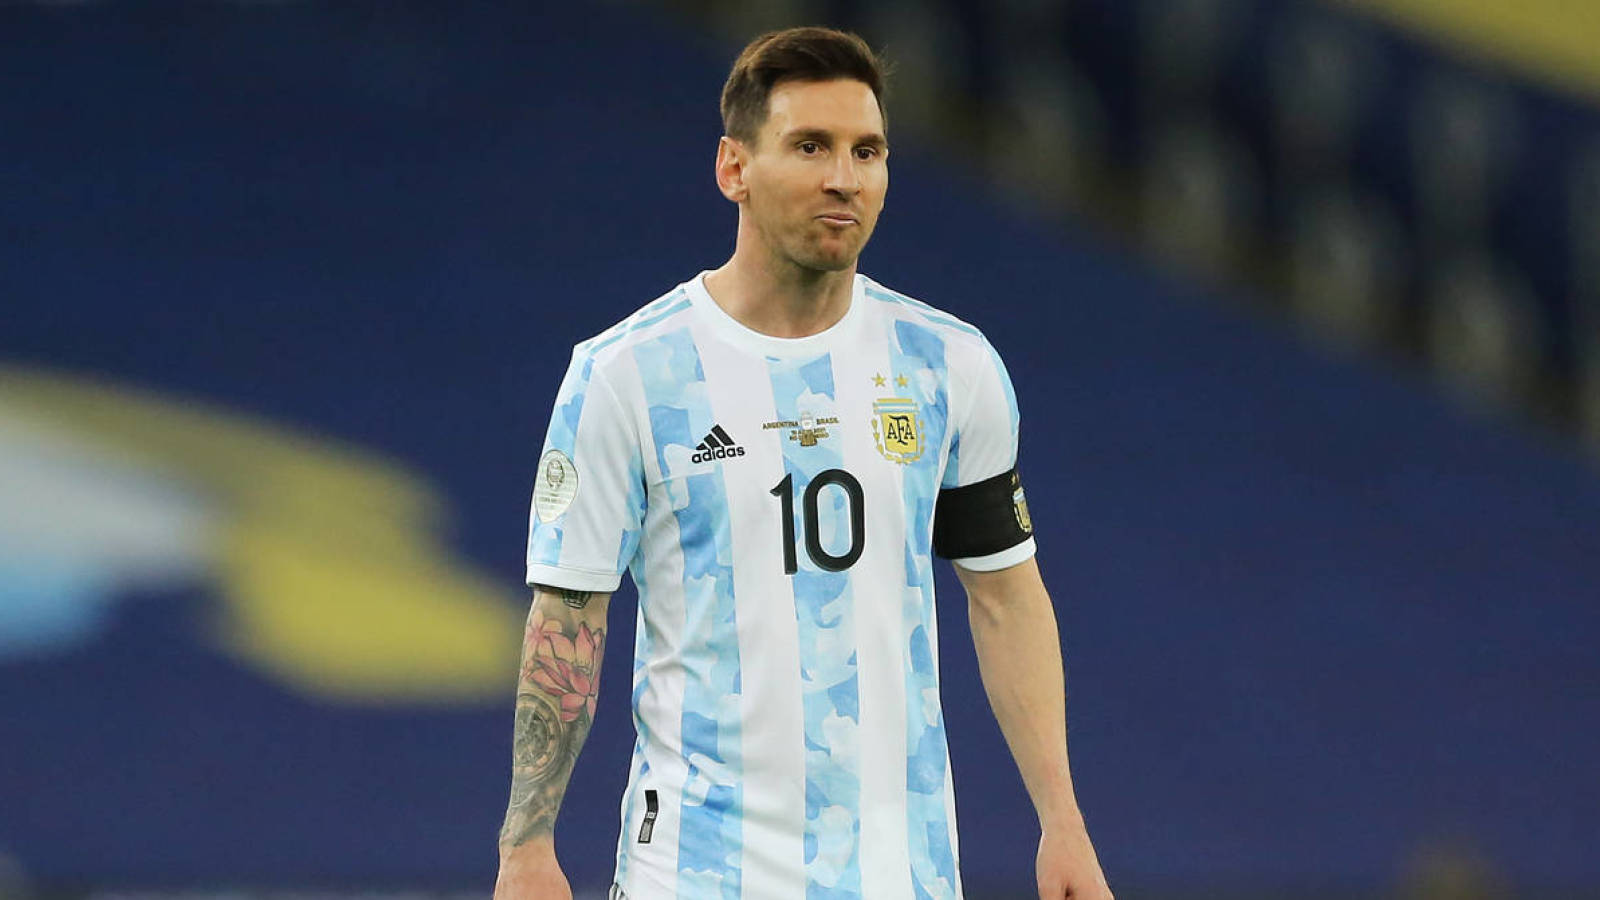 Lionel Messi will not officially sign for Barcelona again